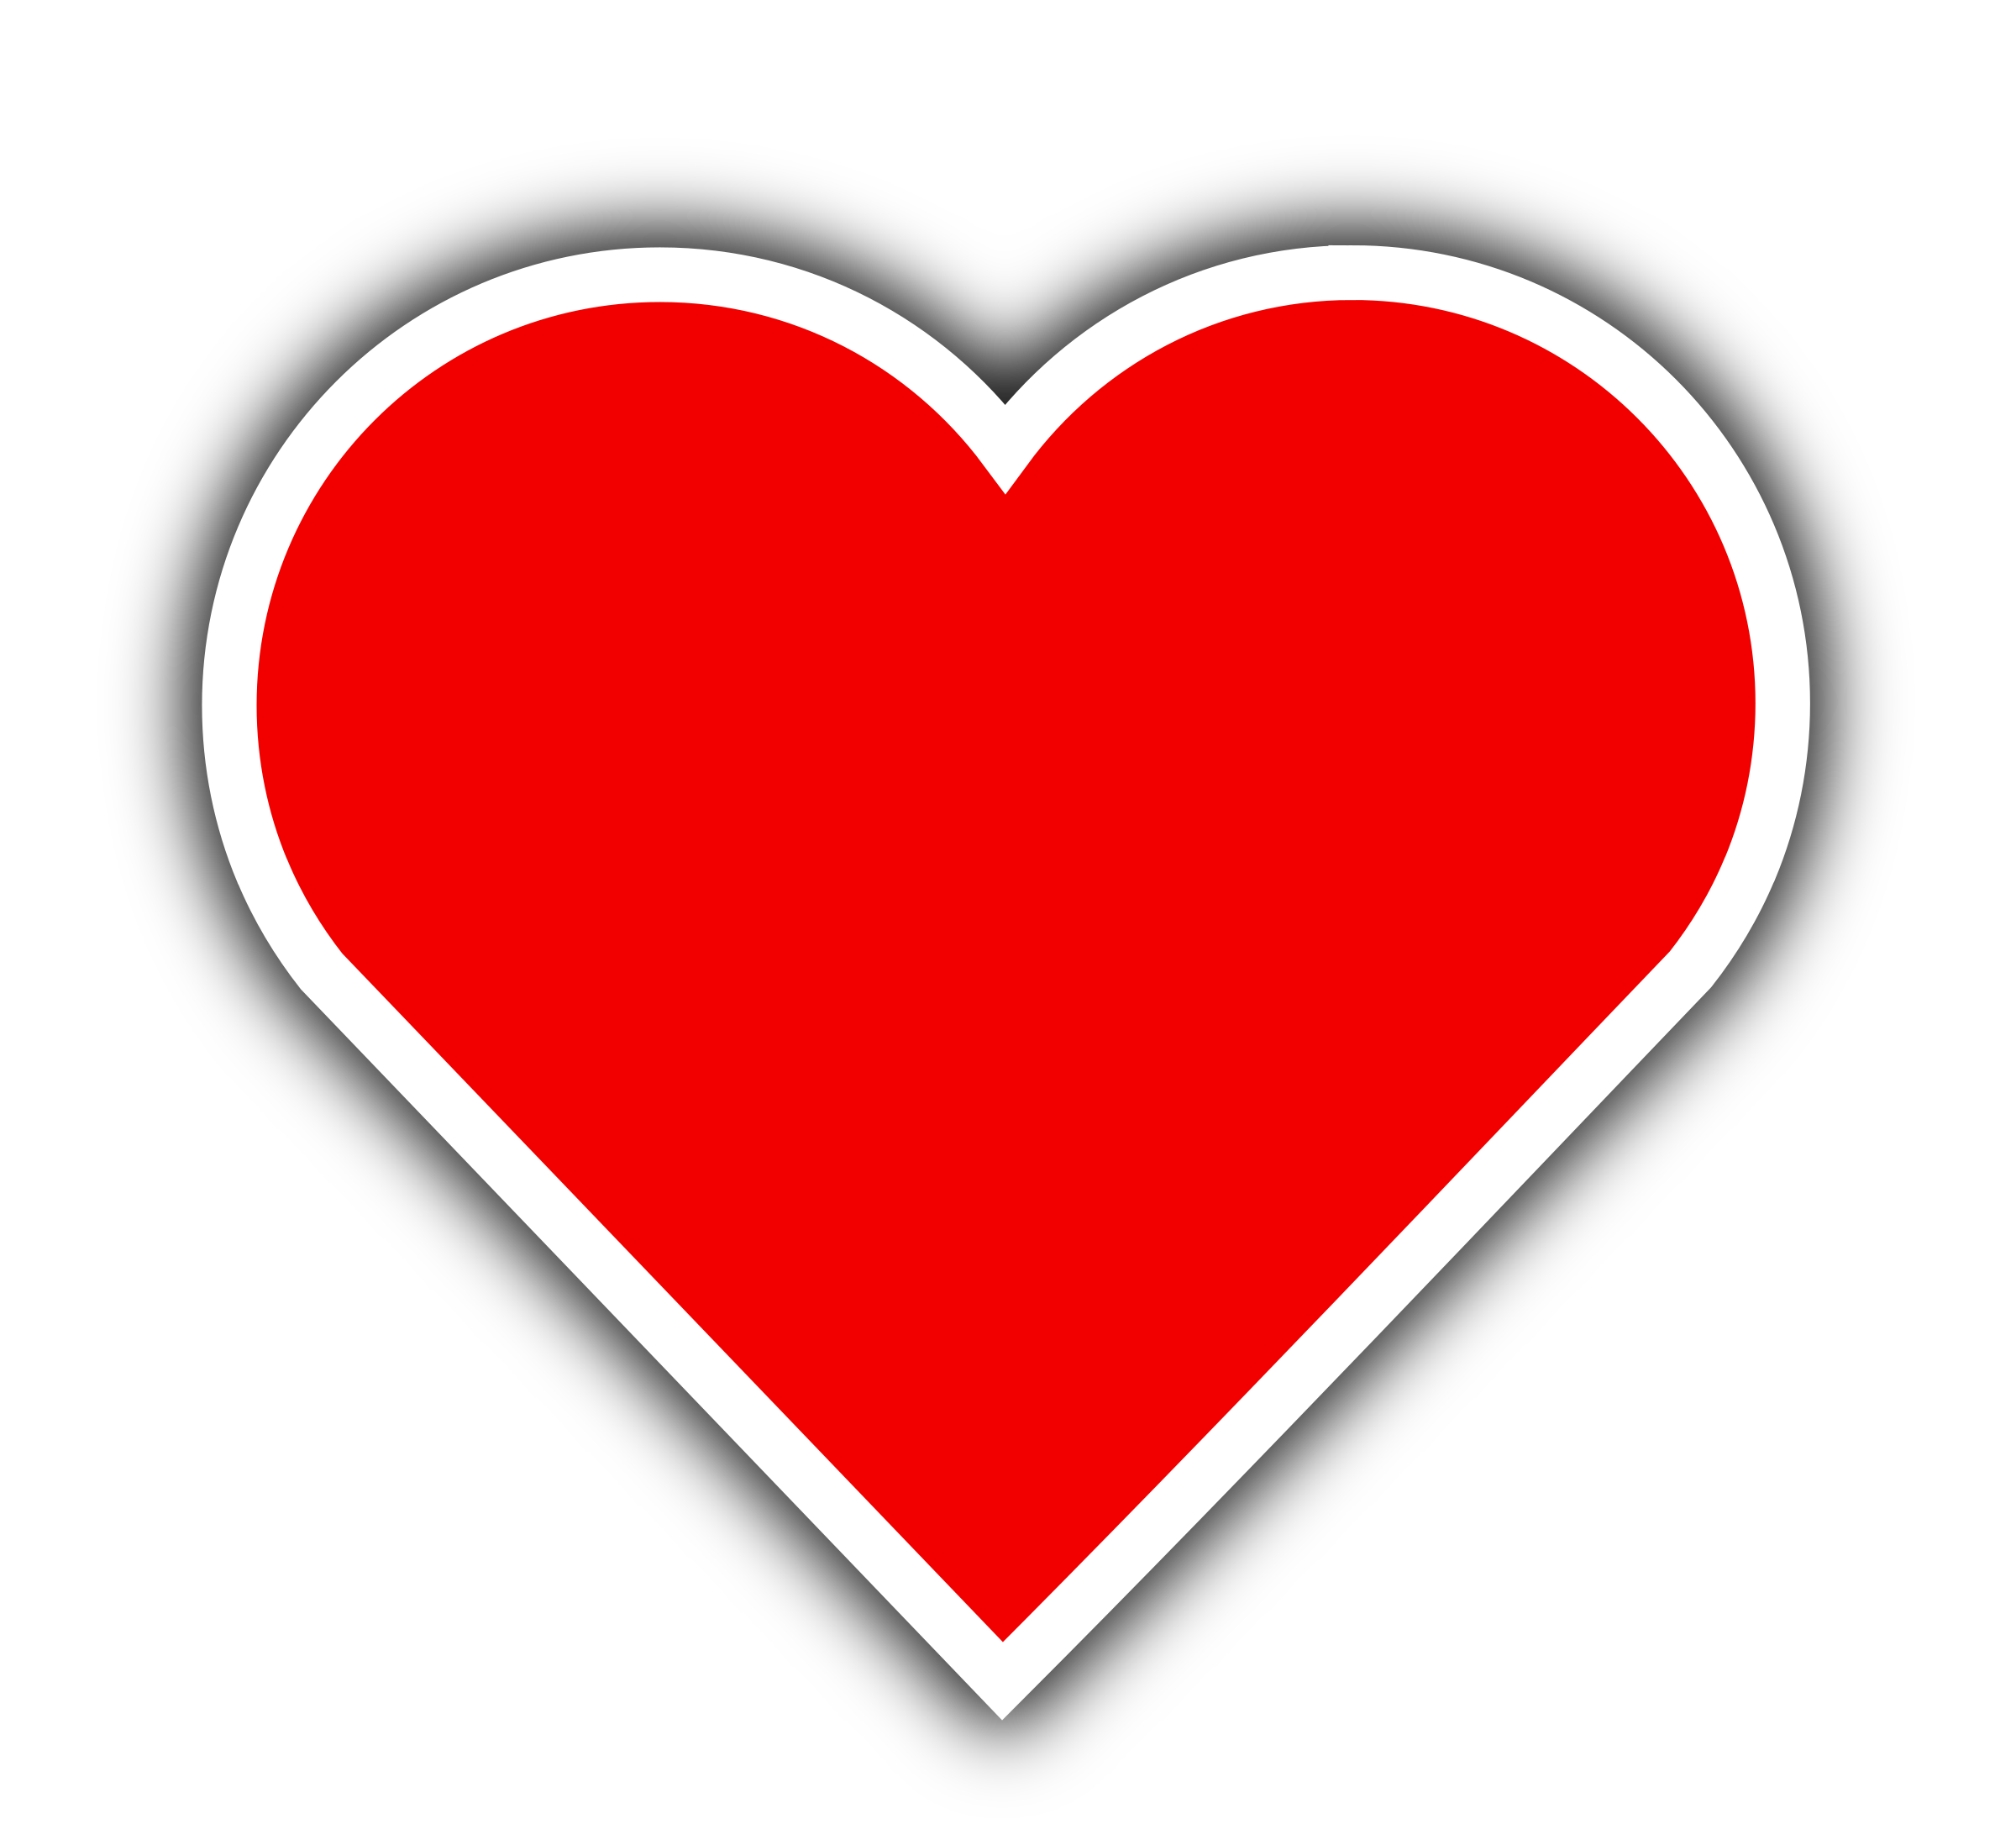 Clipart heart simple. Red big image png